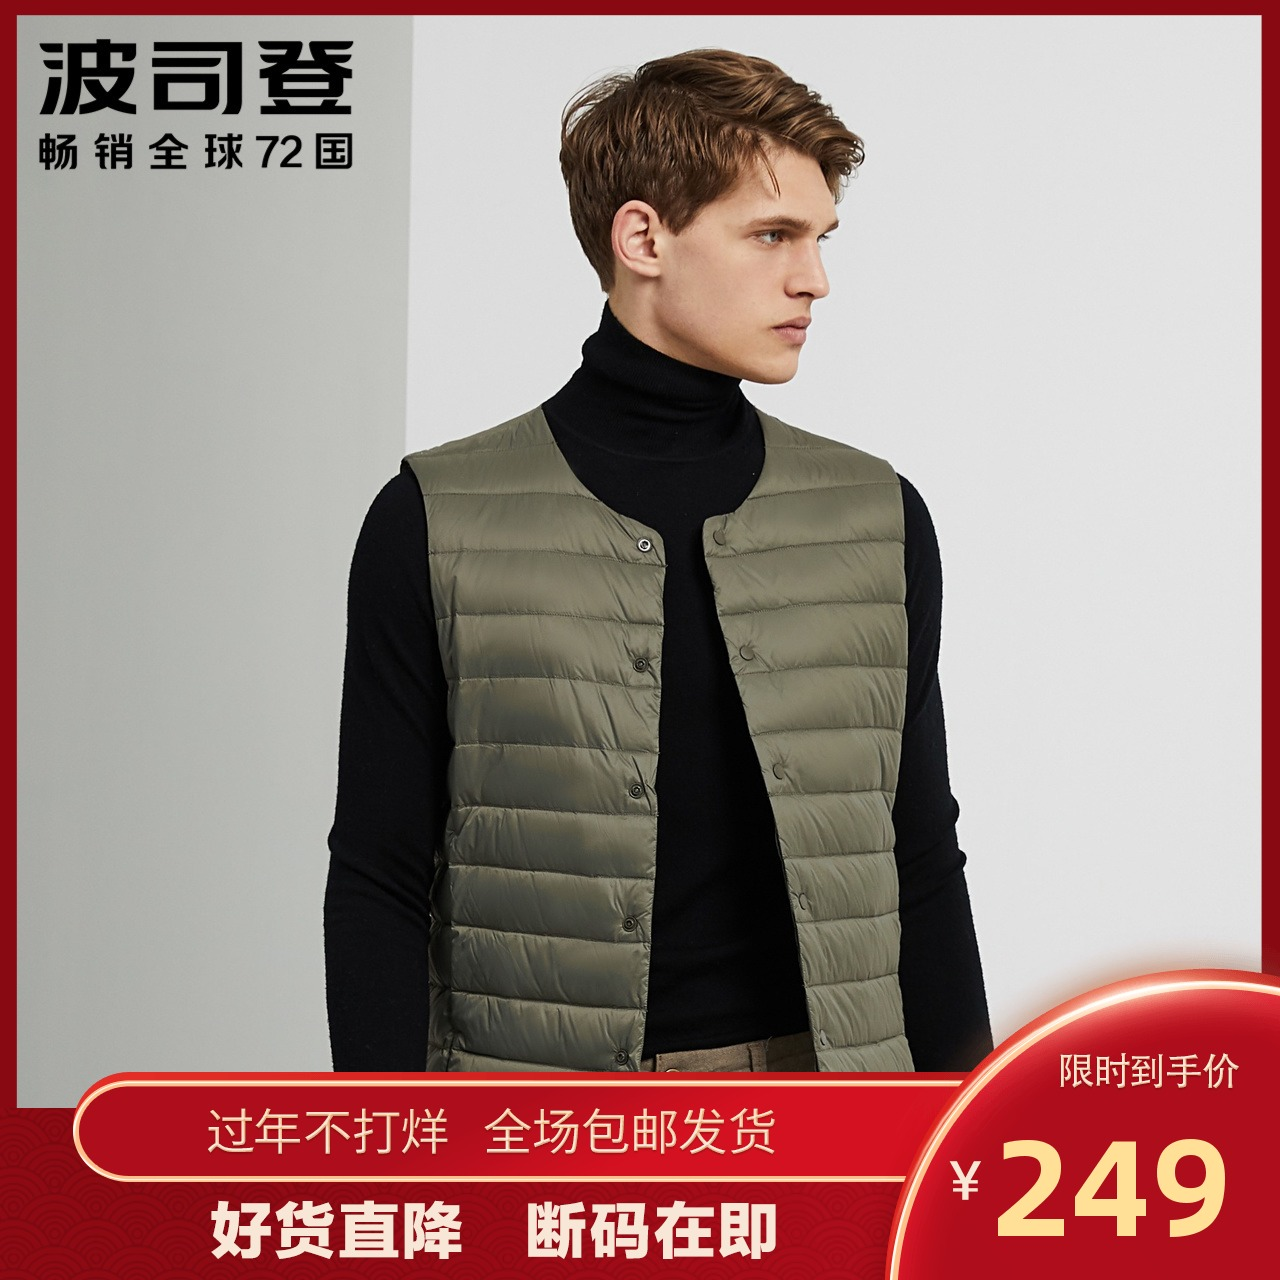 Bosideng down jacket men's short vest 2020 inner wear autumn and winter lightweight vest new round neck vest